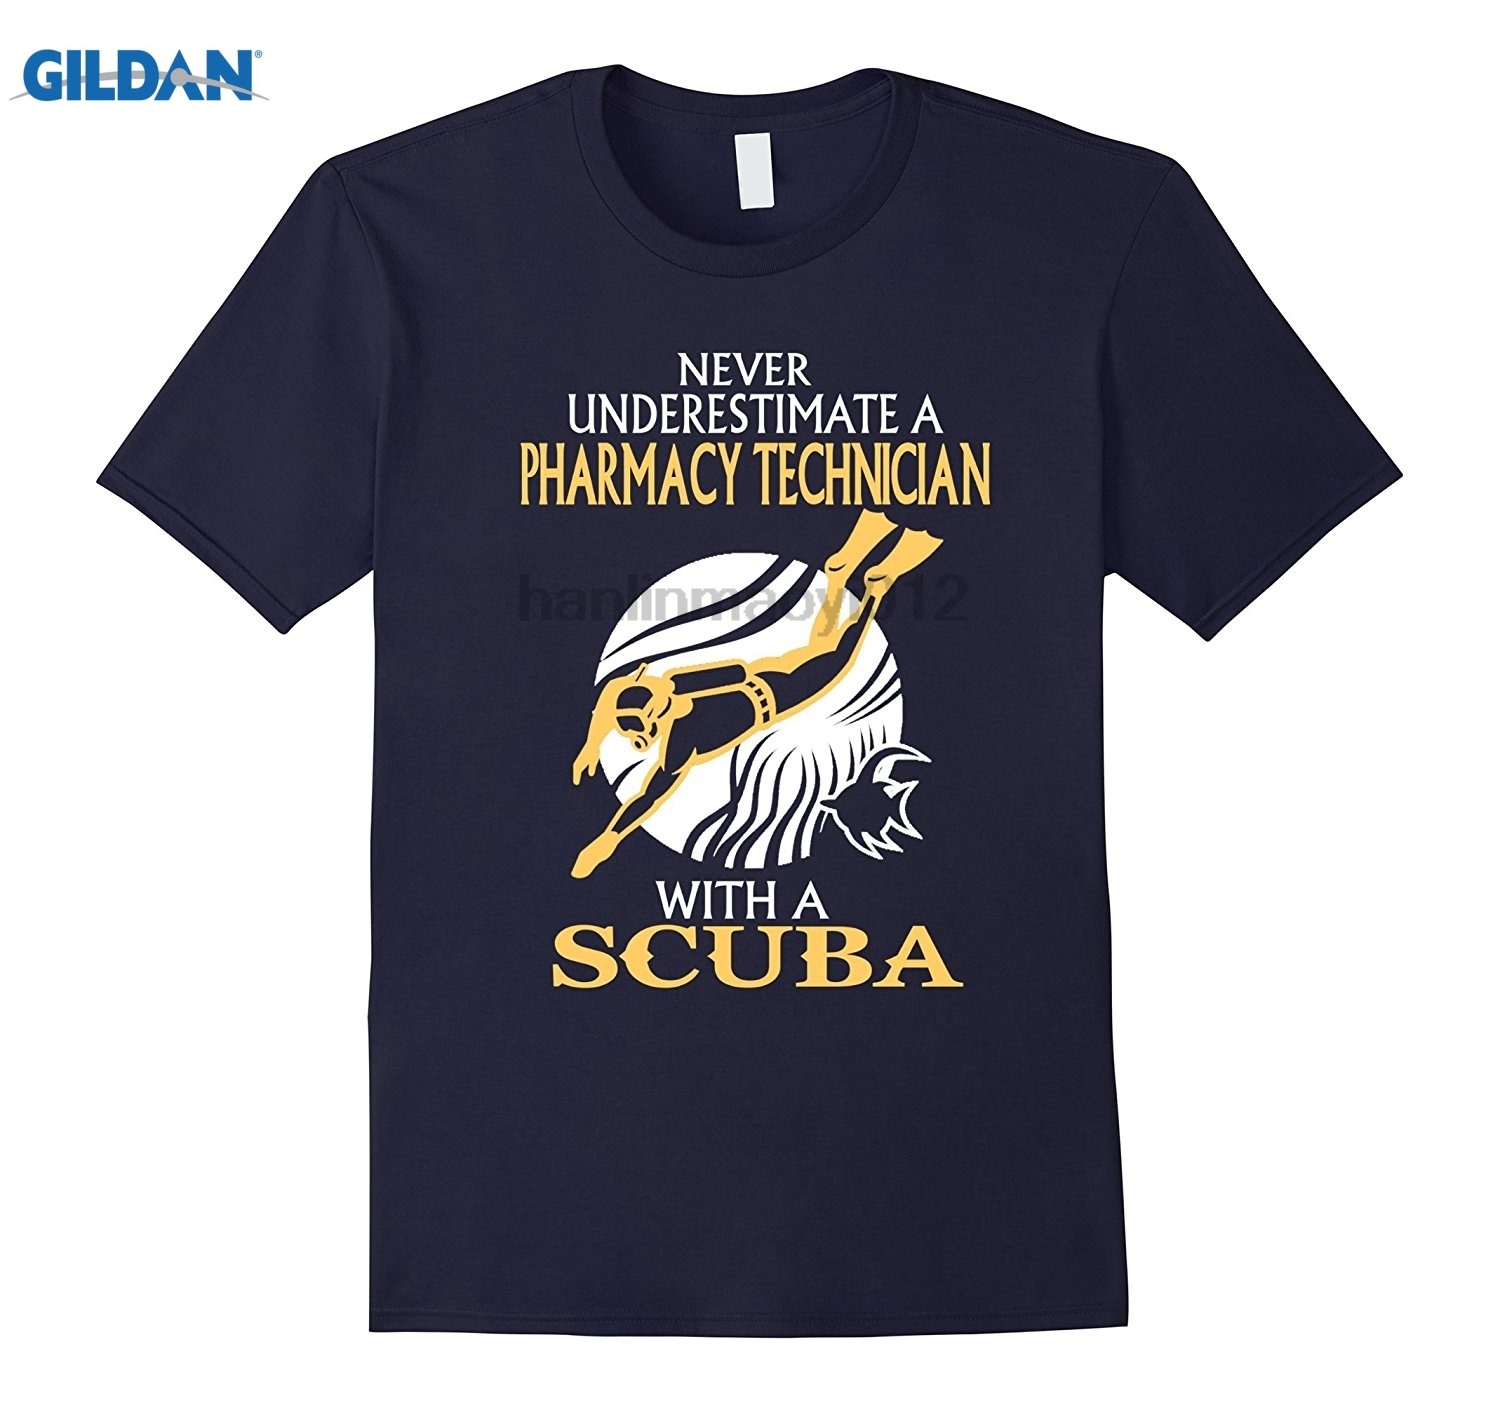 GILDAN Pharmacy Technician With A Scuba Tshirt Hot Womens T-shirt